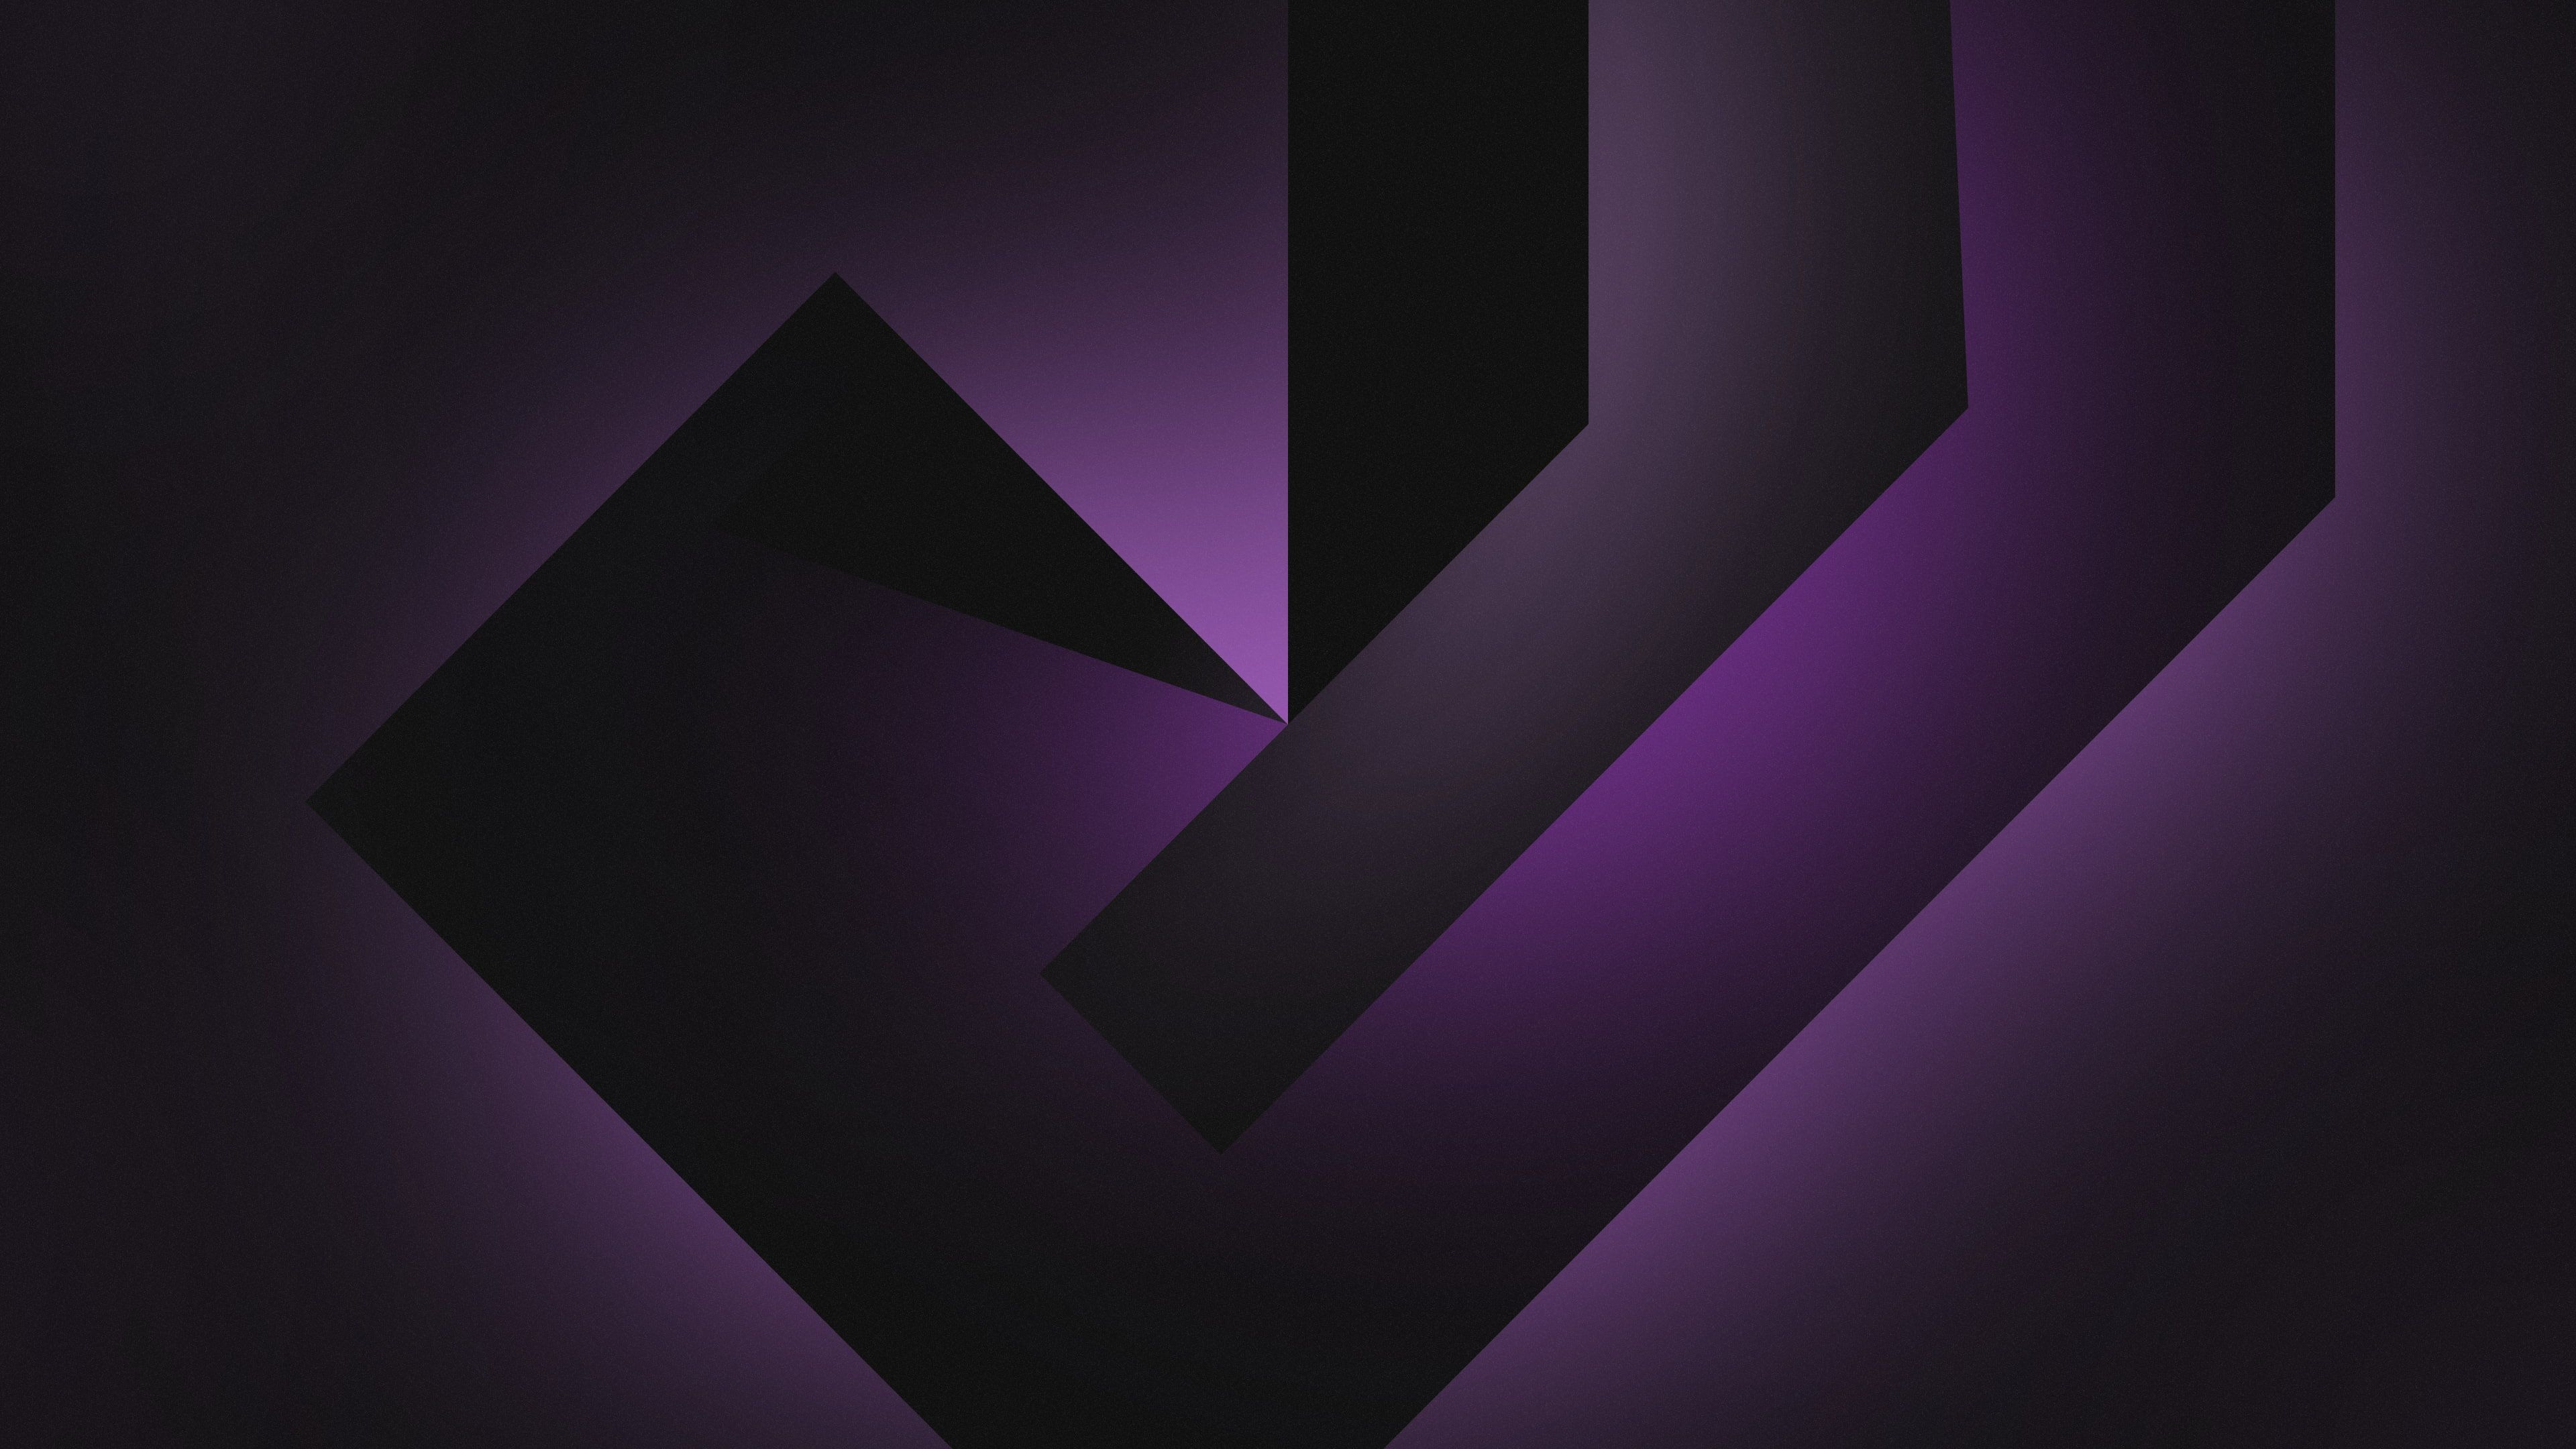 4k Dark Background Gradient Geometric Shapes Violet Black